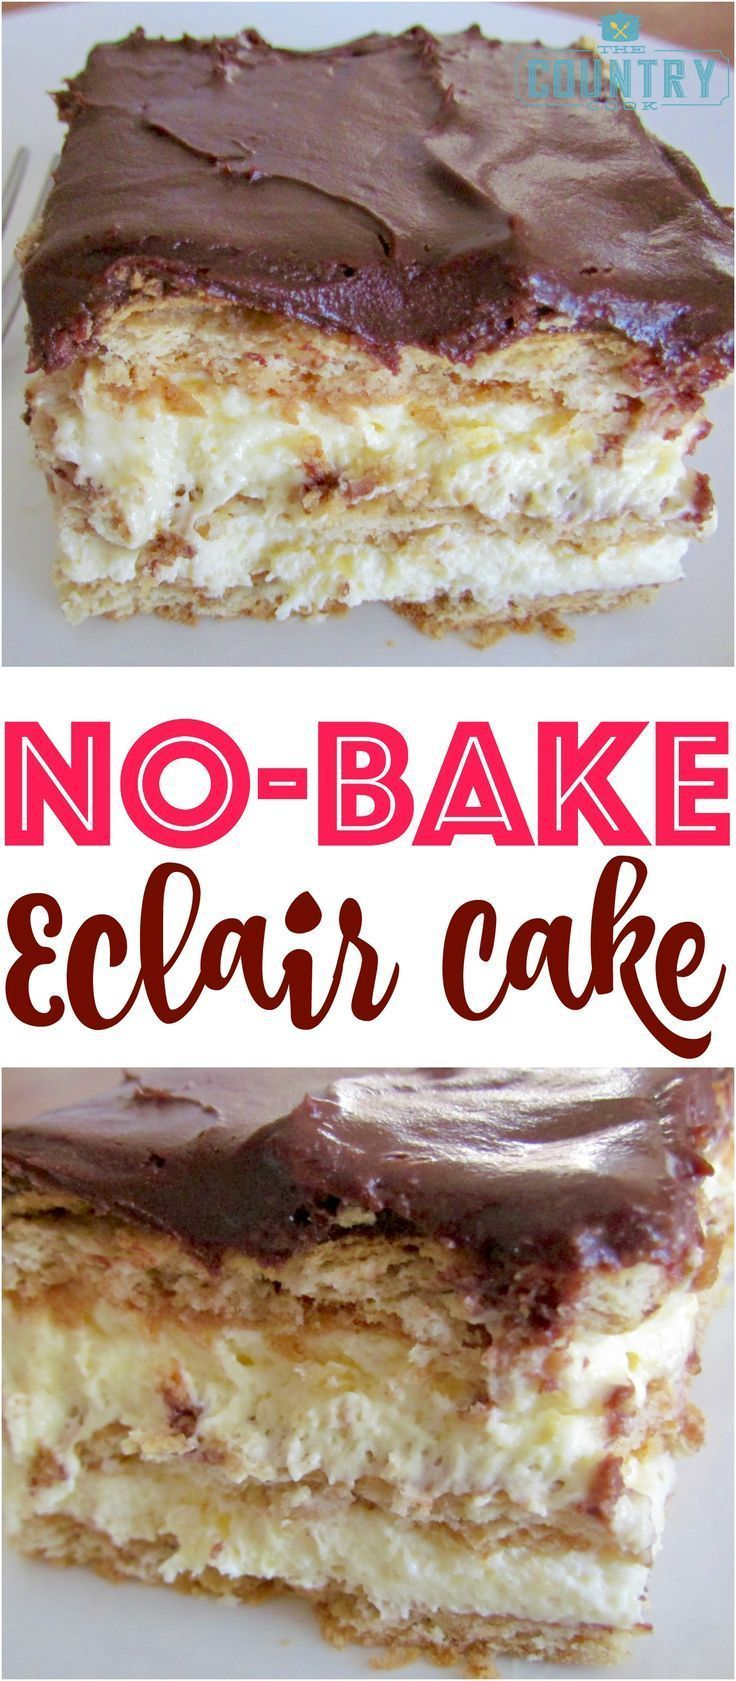 NO-BAKE ECLAIR CAKE (+Video) | The Country Cook #enklaefterrätter